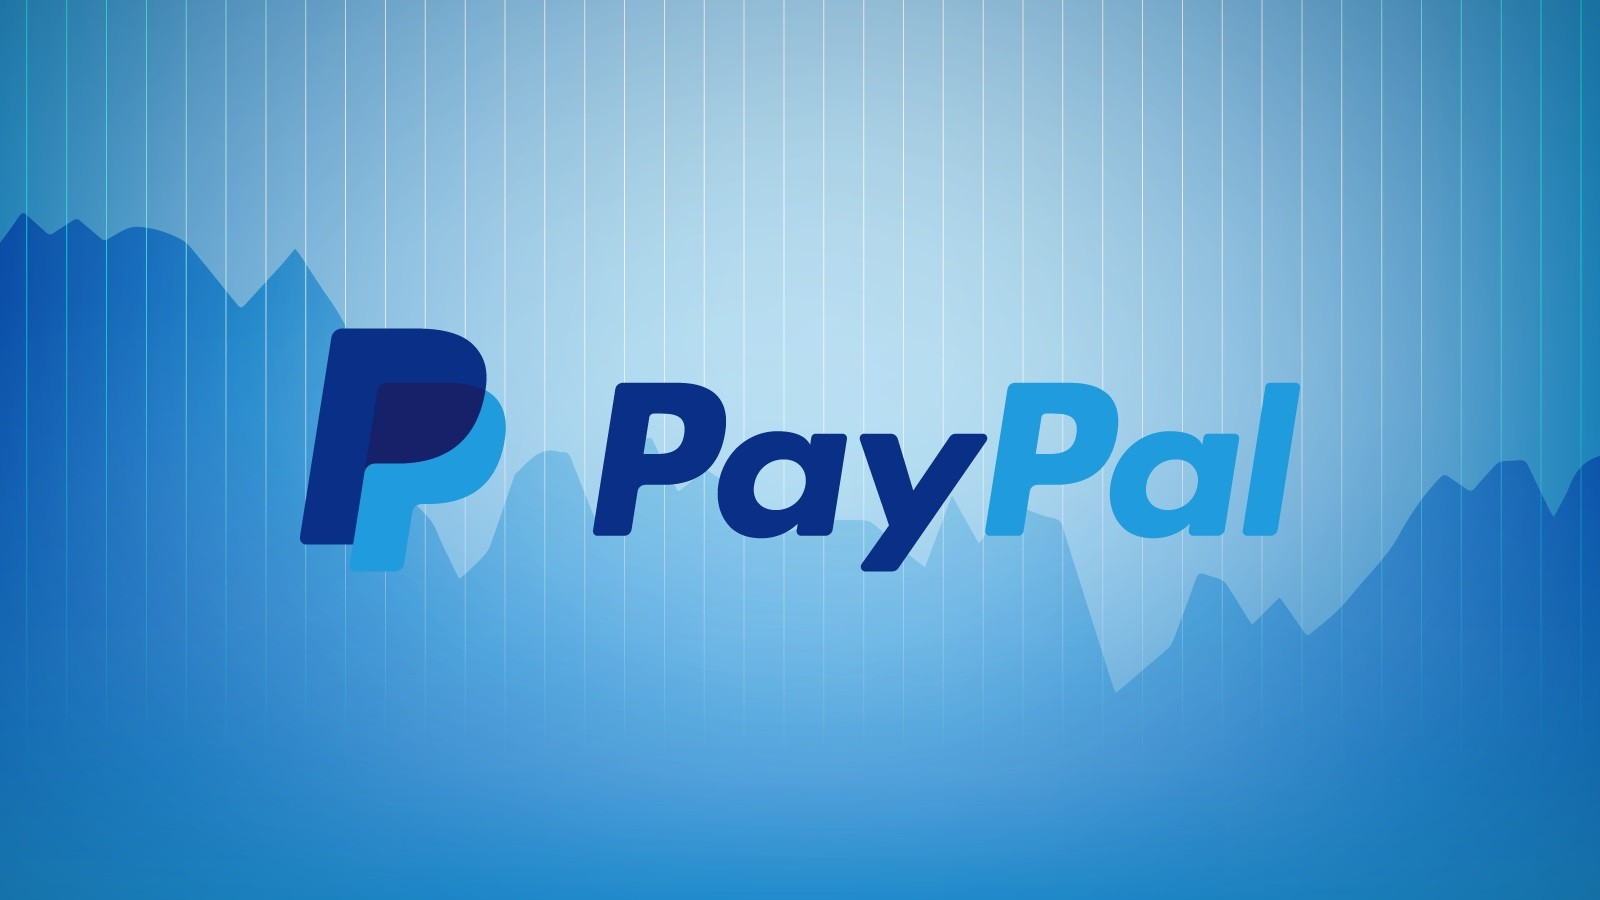 Paypal Fixes Security Flaw Allowing Hackers To Steal Oauth Tokens